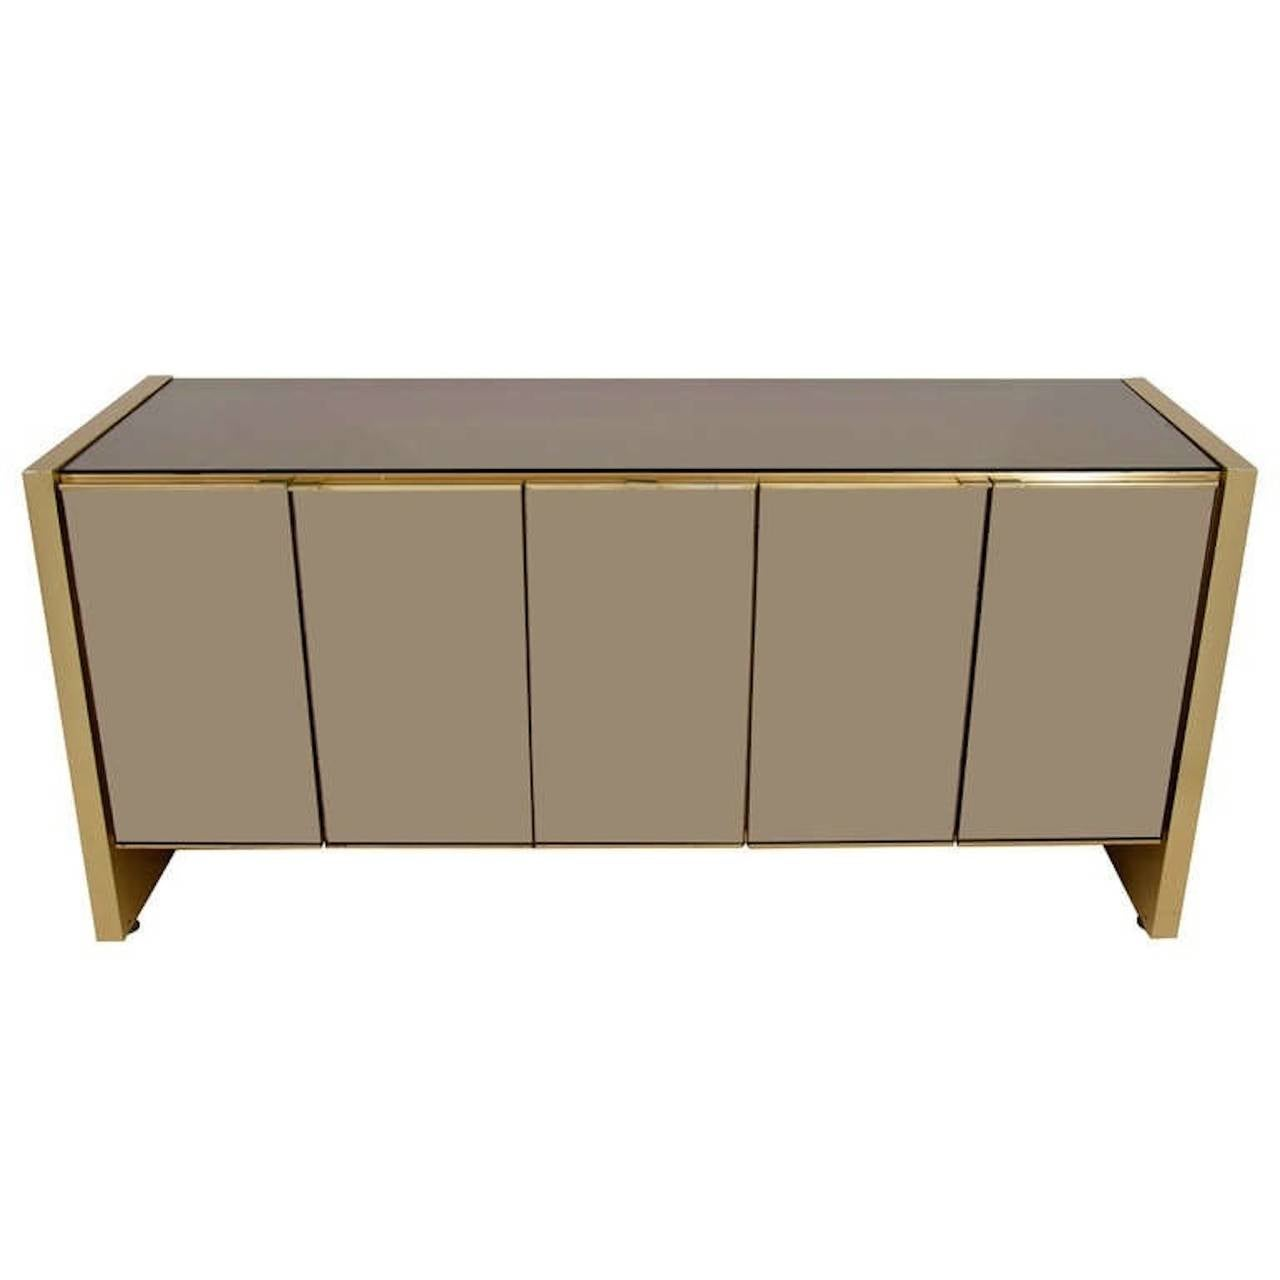 Ello sideboard bronze tinted mirror and brass for sale at for Sideboard glasfront